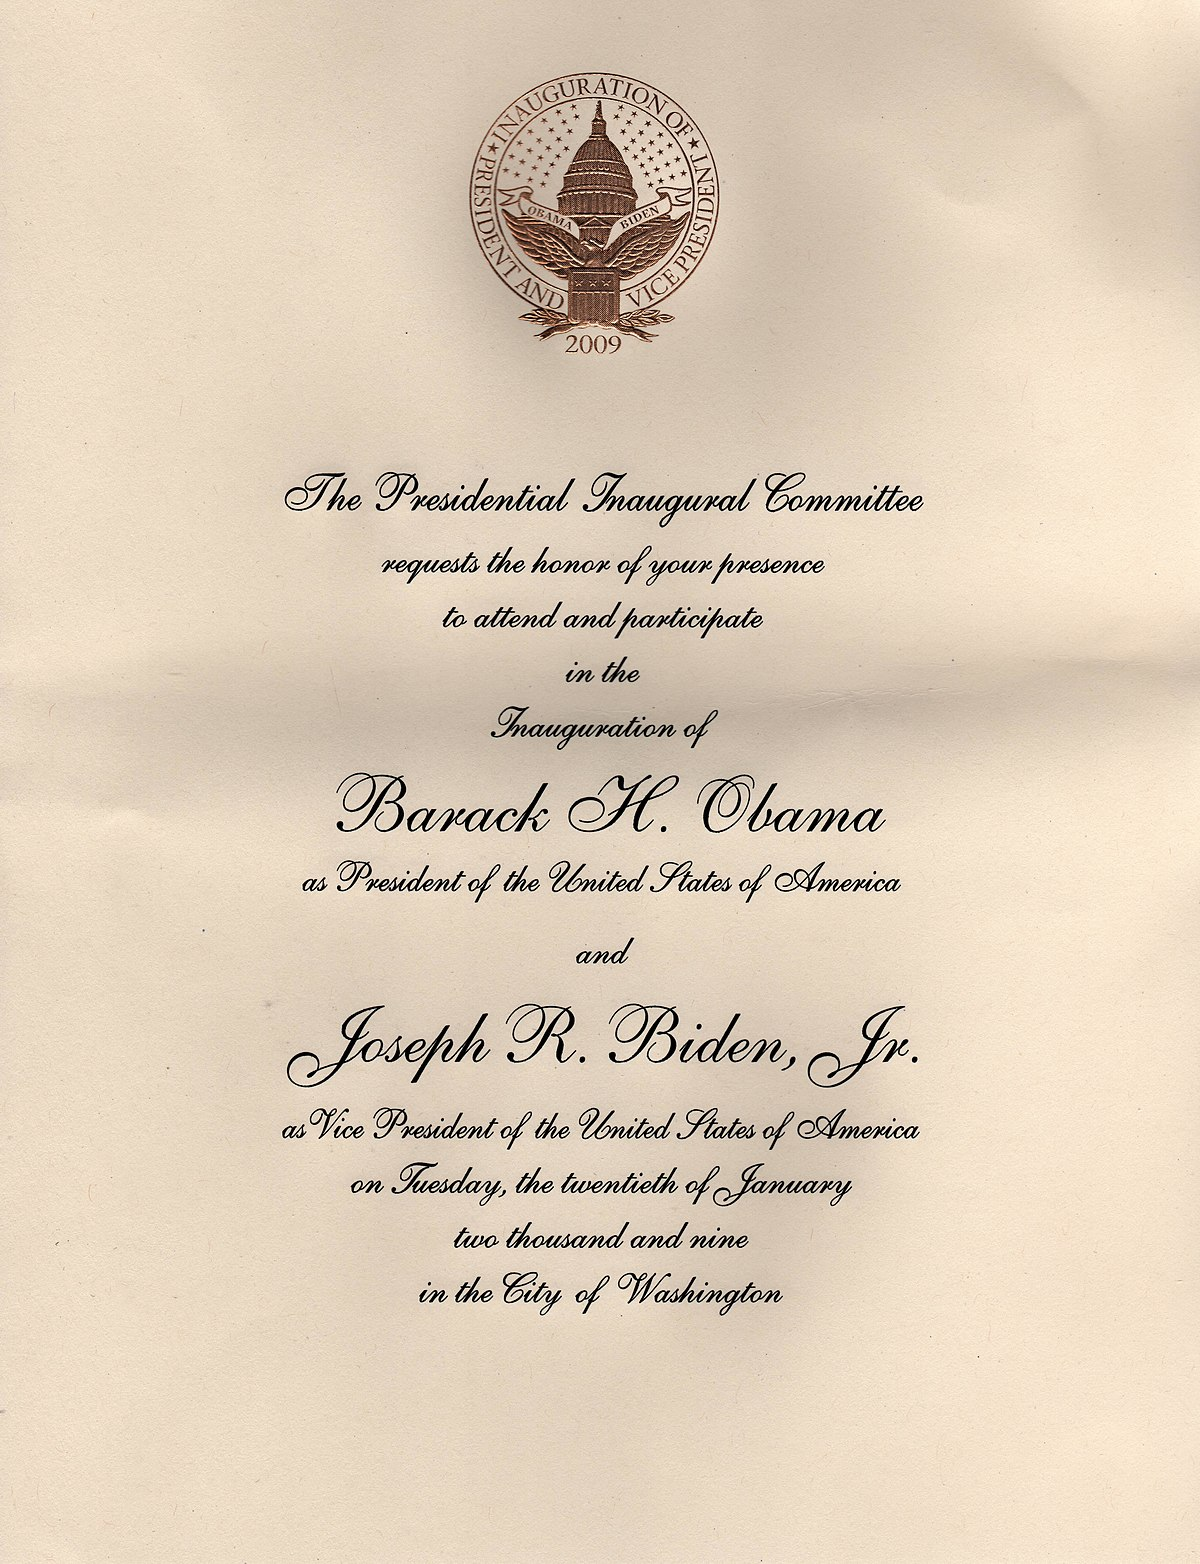 invitations to the first inauguration